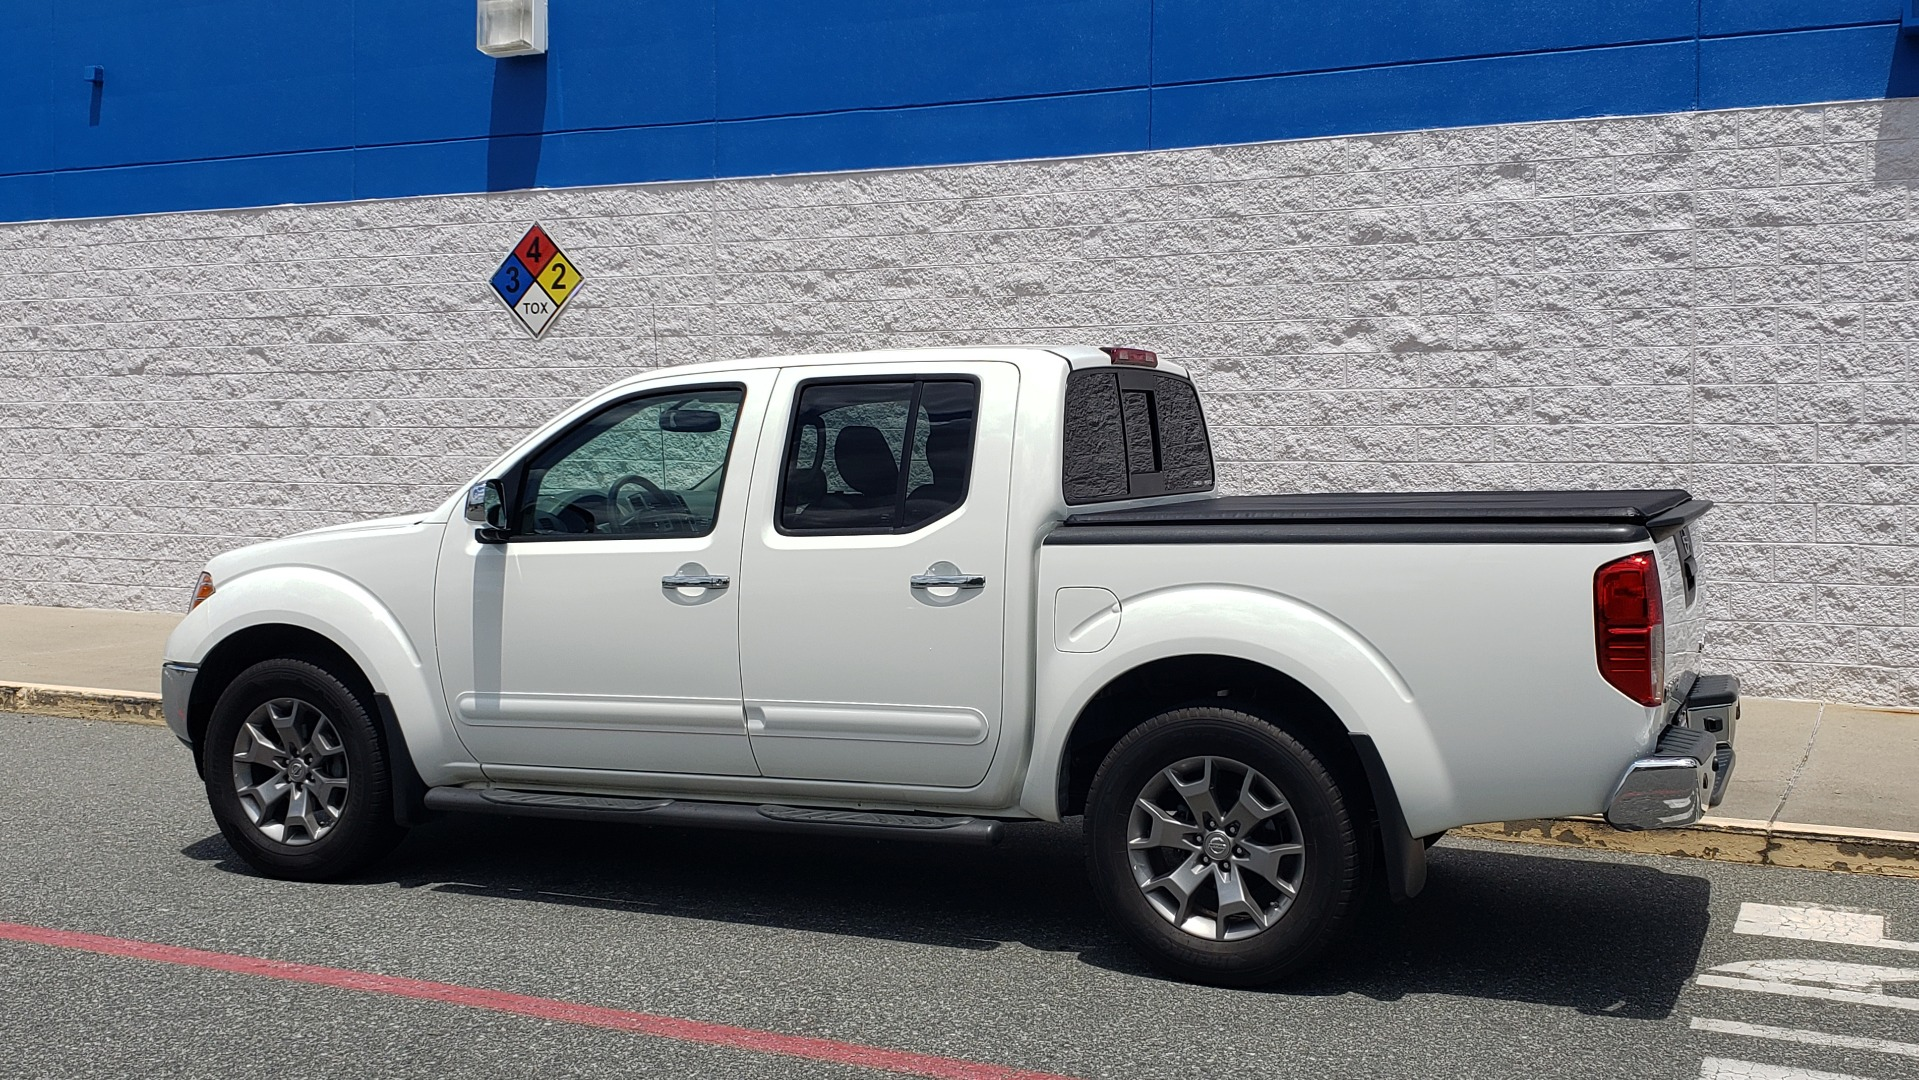 Used 2019 Nissan FRONTIER SL CREW CAB / 4X4 / NAV / SUNROOF / ROCKFORD FOSGATE / LOADED for sale $31,495 at Formula Imports in Charlotte NC 28227 7